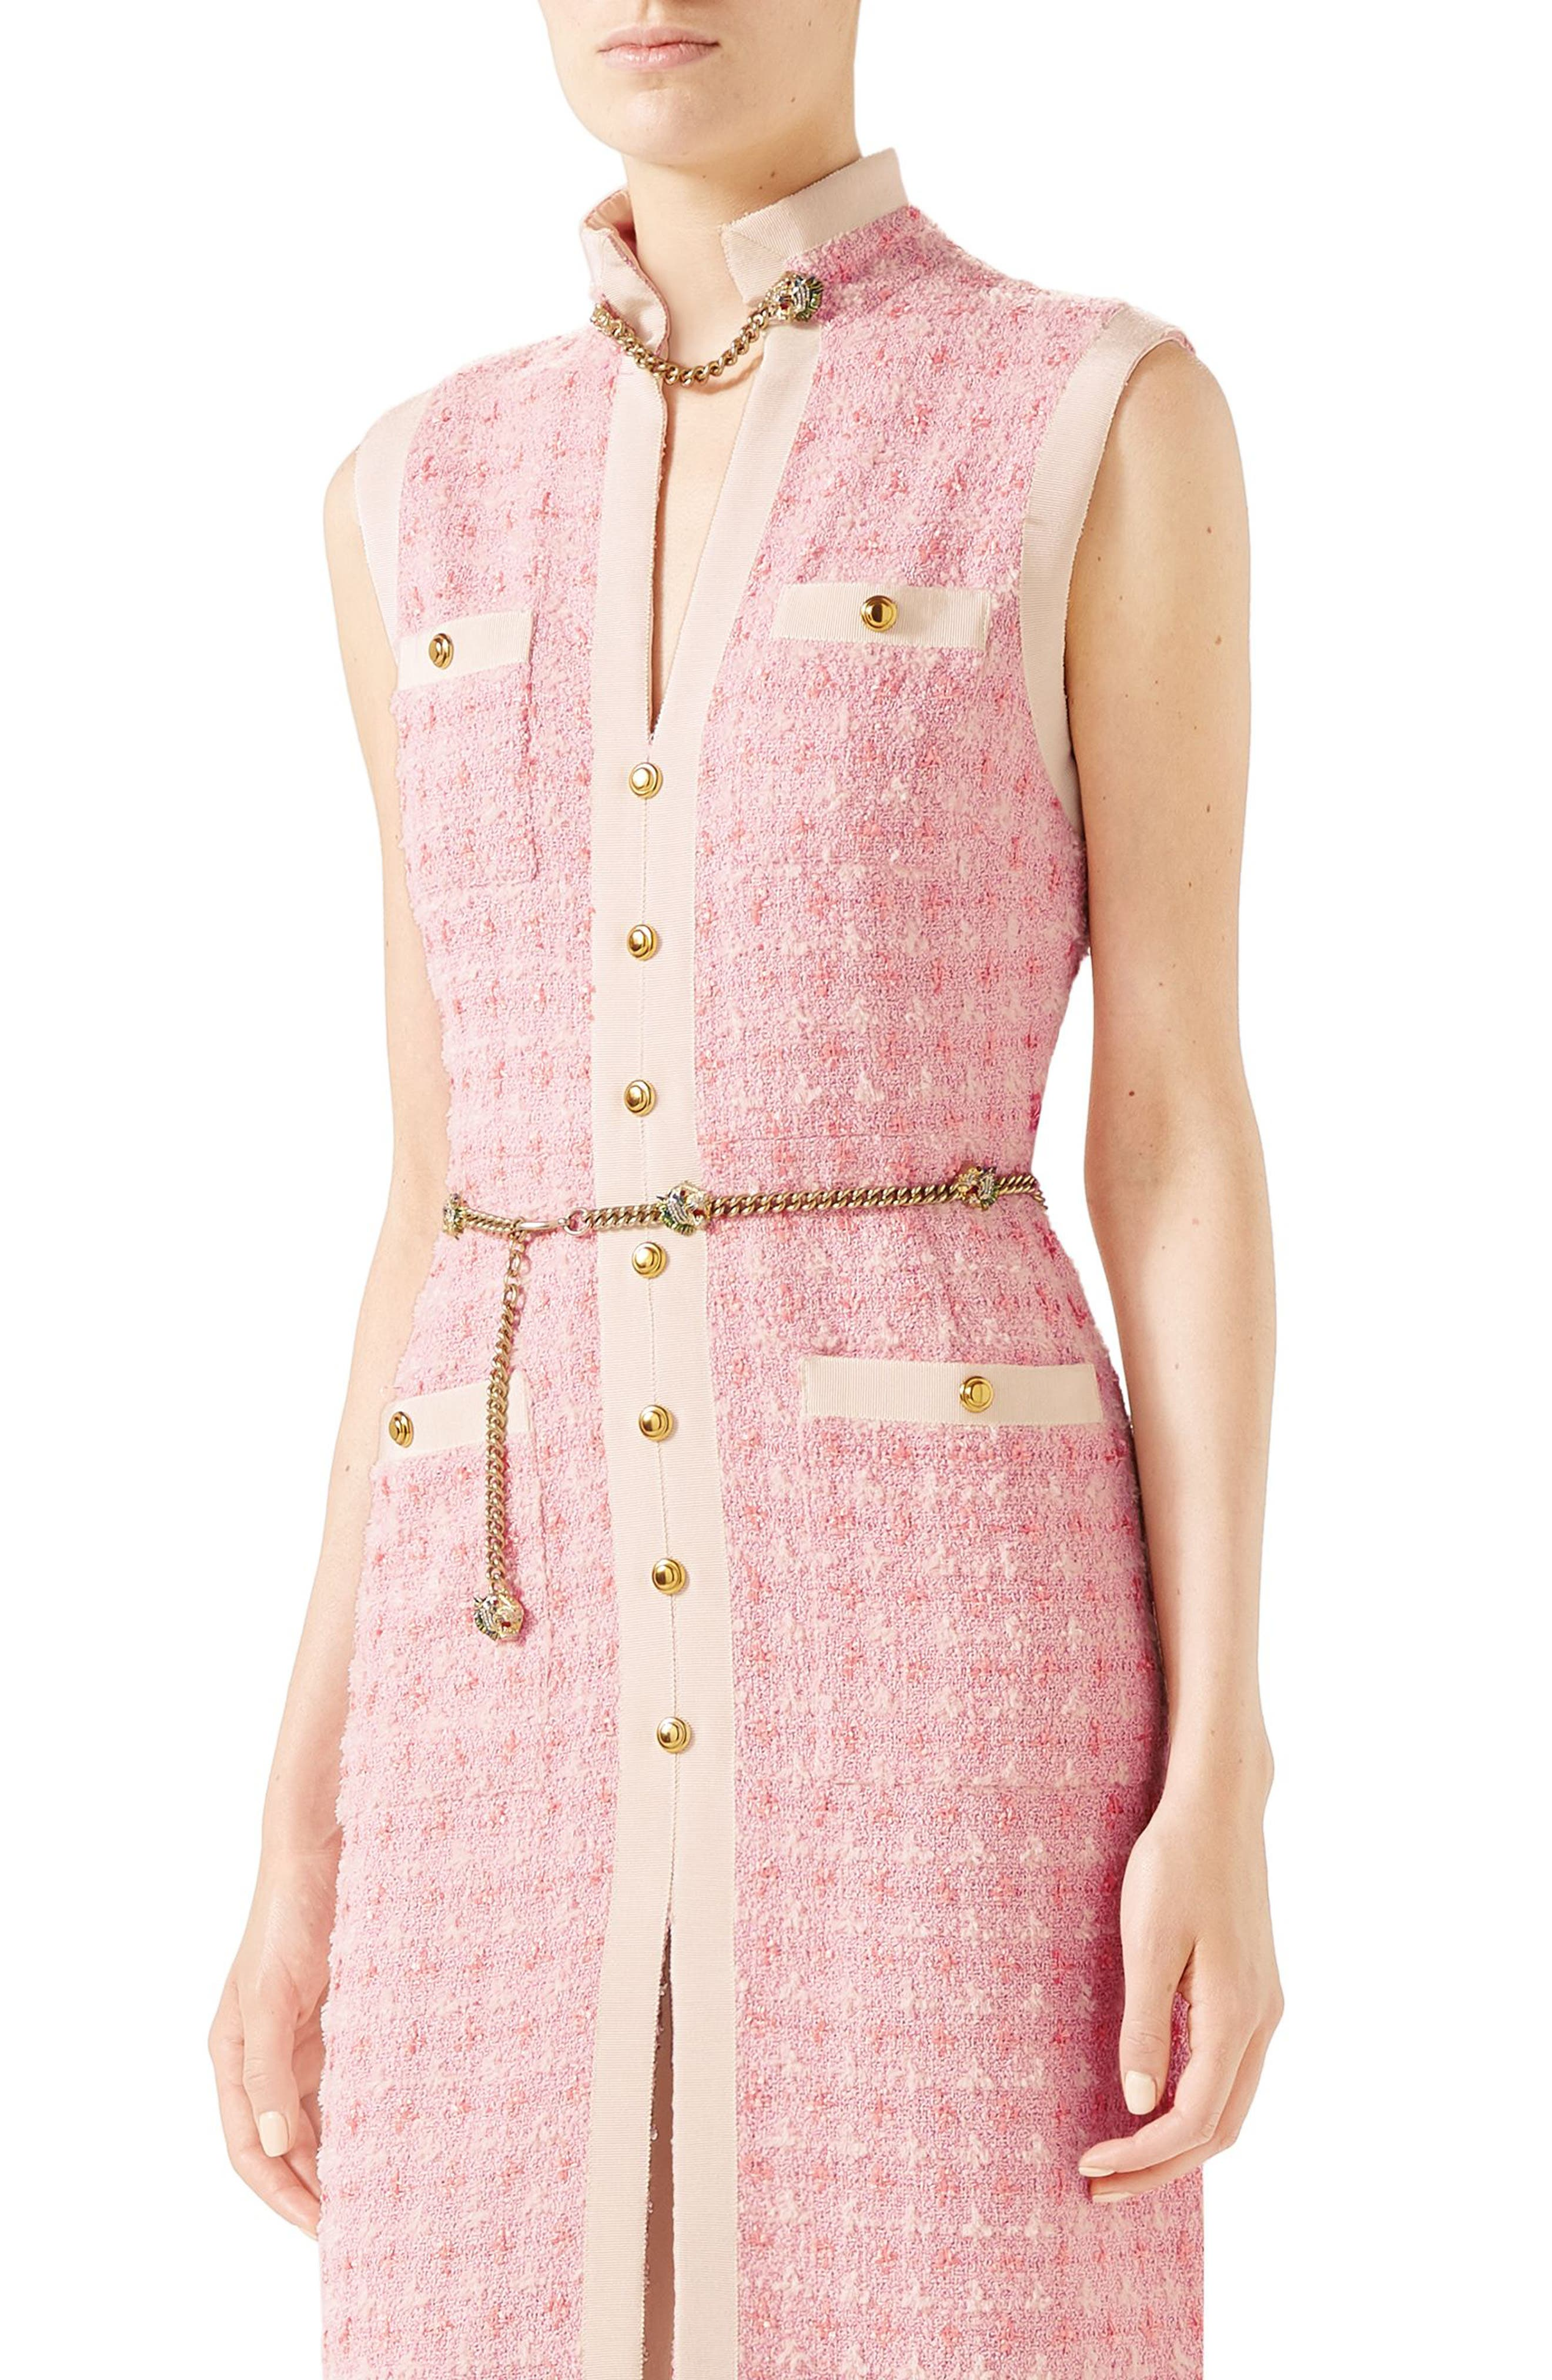 Gucci Chain Embellished Tweed Dress, US / 46 IT - Pink